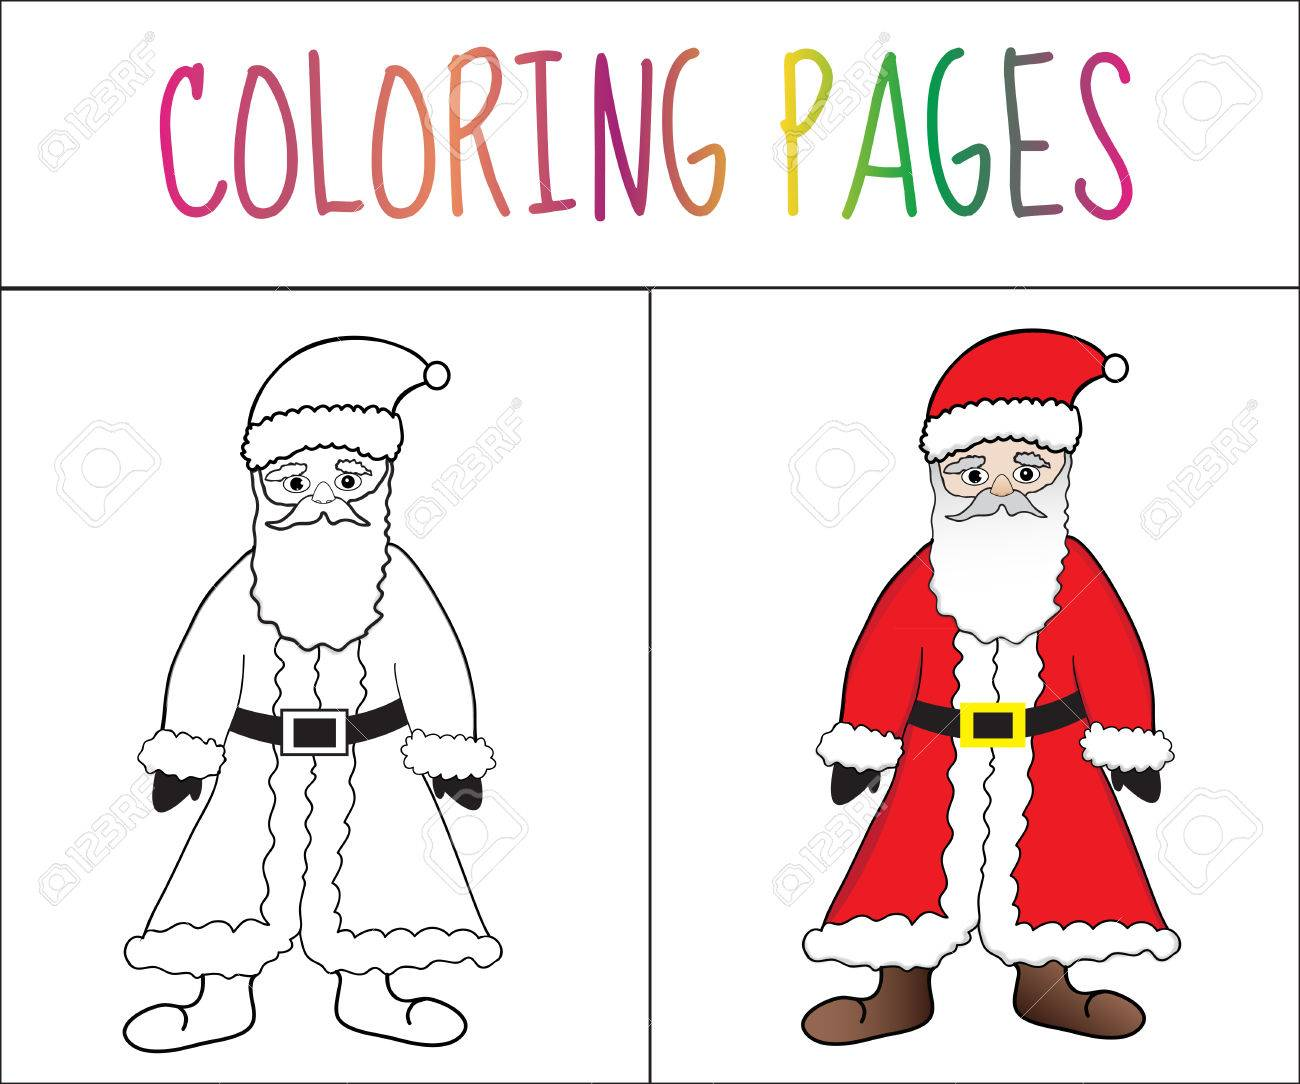 coloring book page santa claus sketch and color version coloring